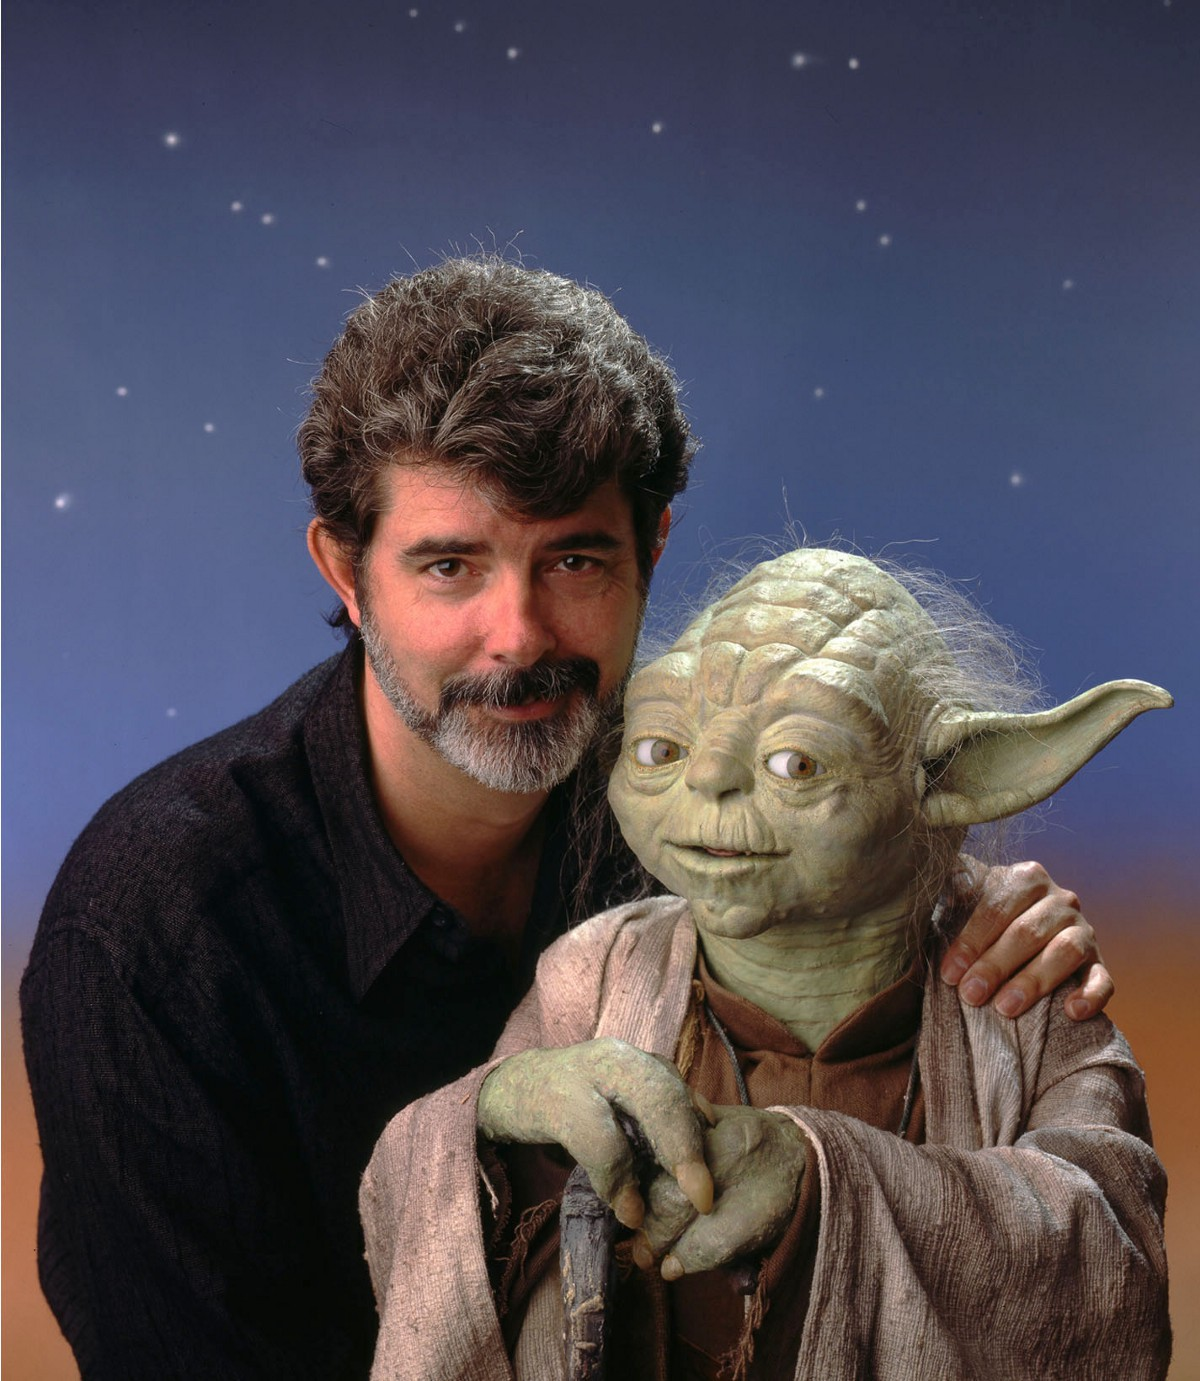 Photographing George Lucas & Yoda